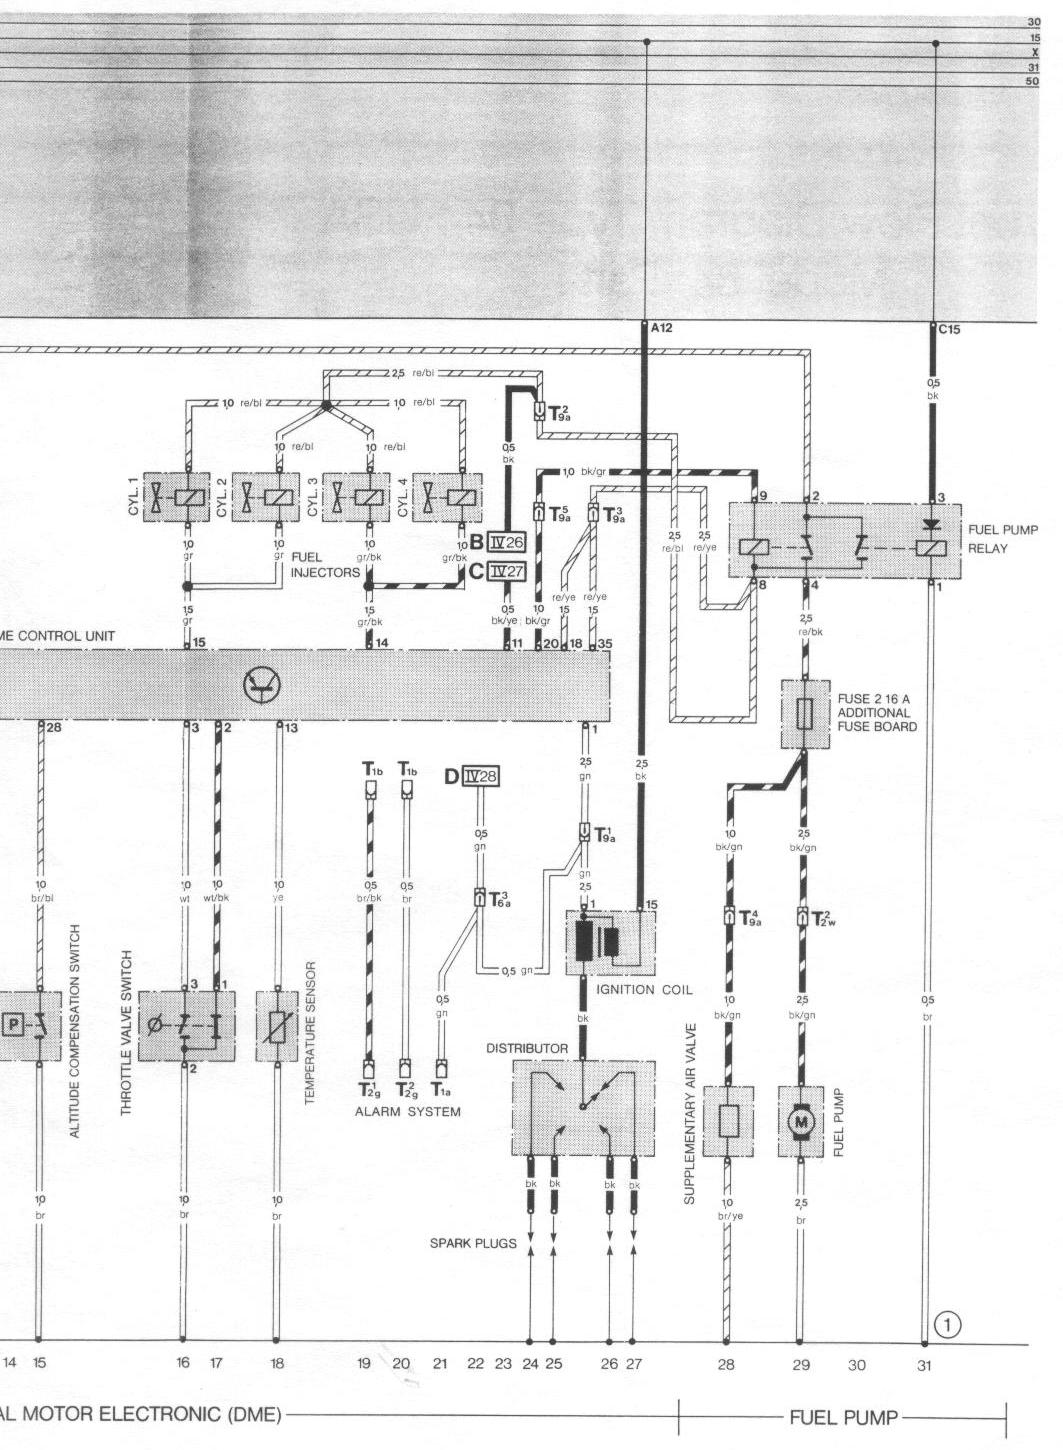 944_84_1_2 pelican parts porsche 924 944 electrical diagrams 1983 porsche 944 fuse box diagram at bayanpartner.co